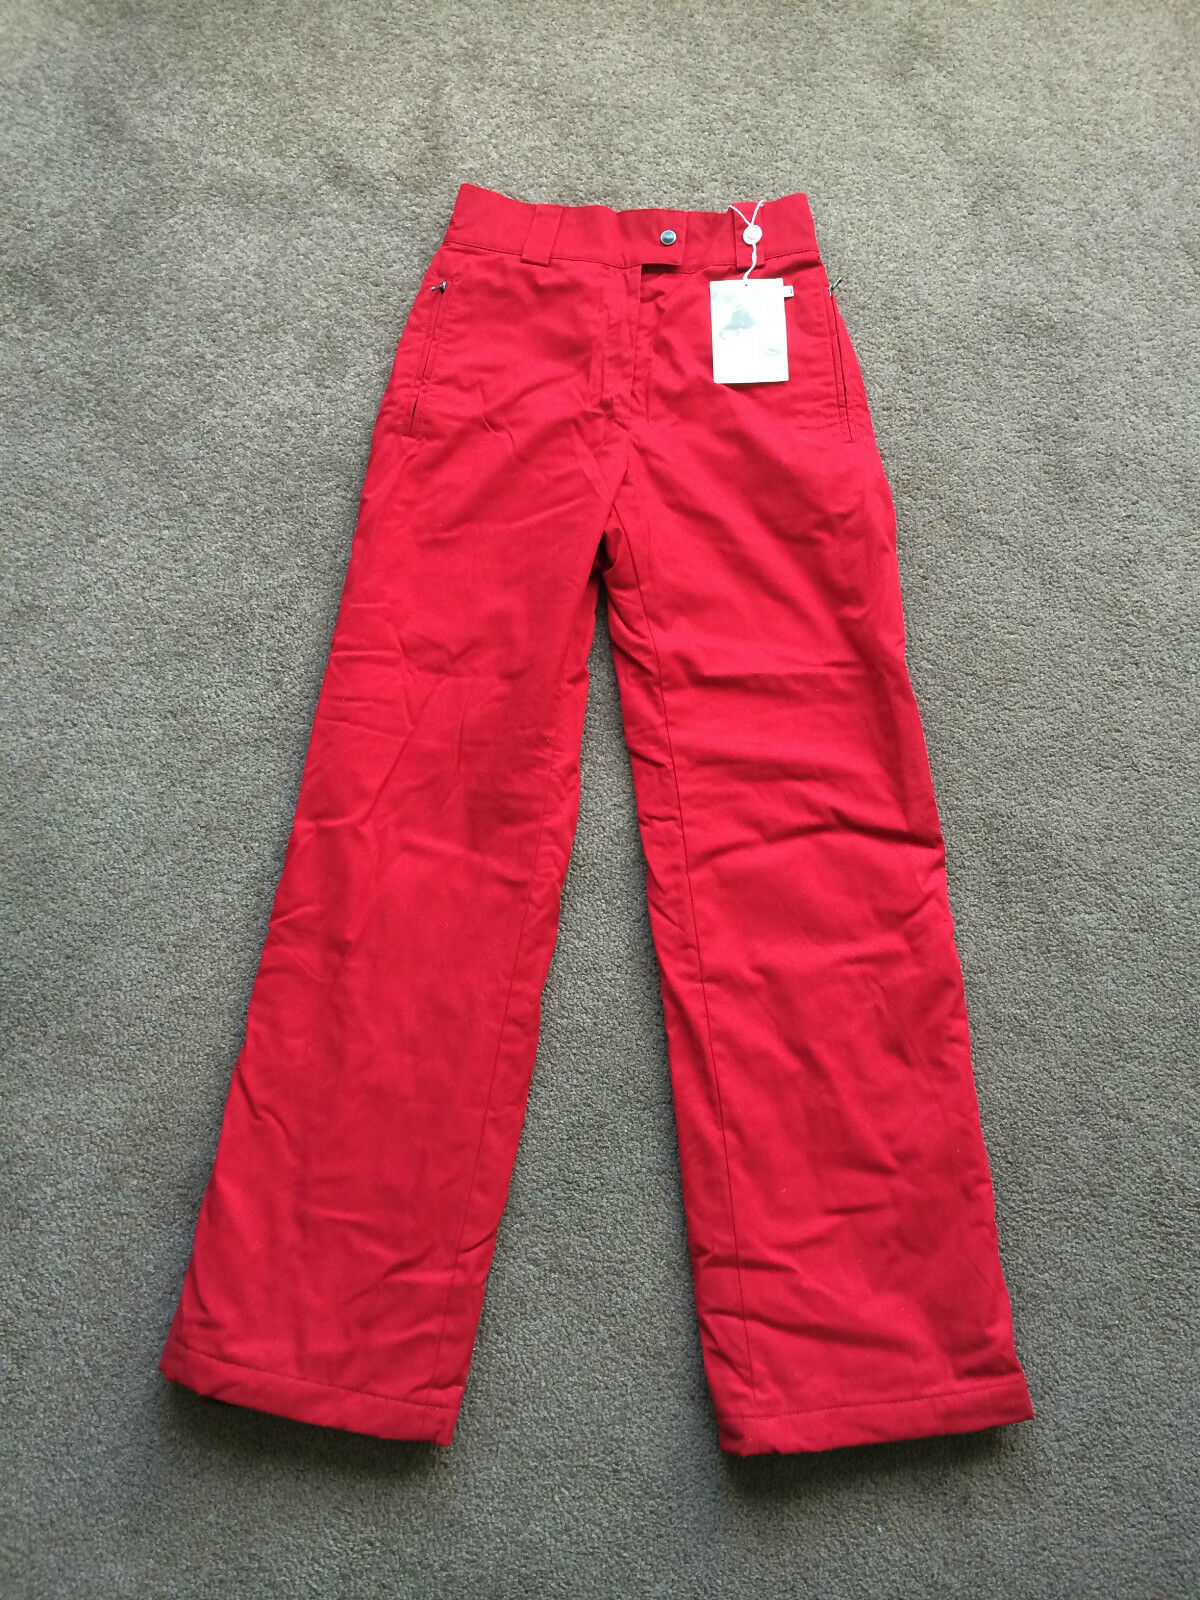 VAMPIRE 1950 SKI   SNOWBOARD INSULATED PANTS Sz 42 IT S US MADE IN ITALY NWT